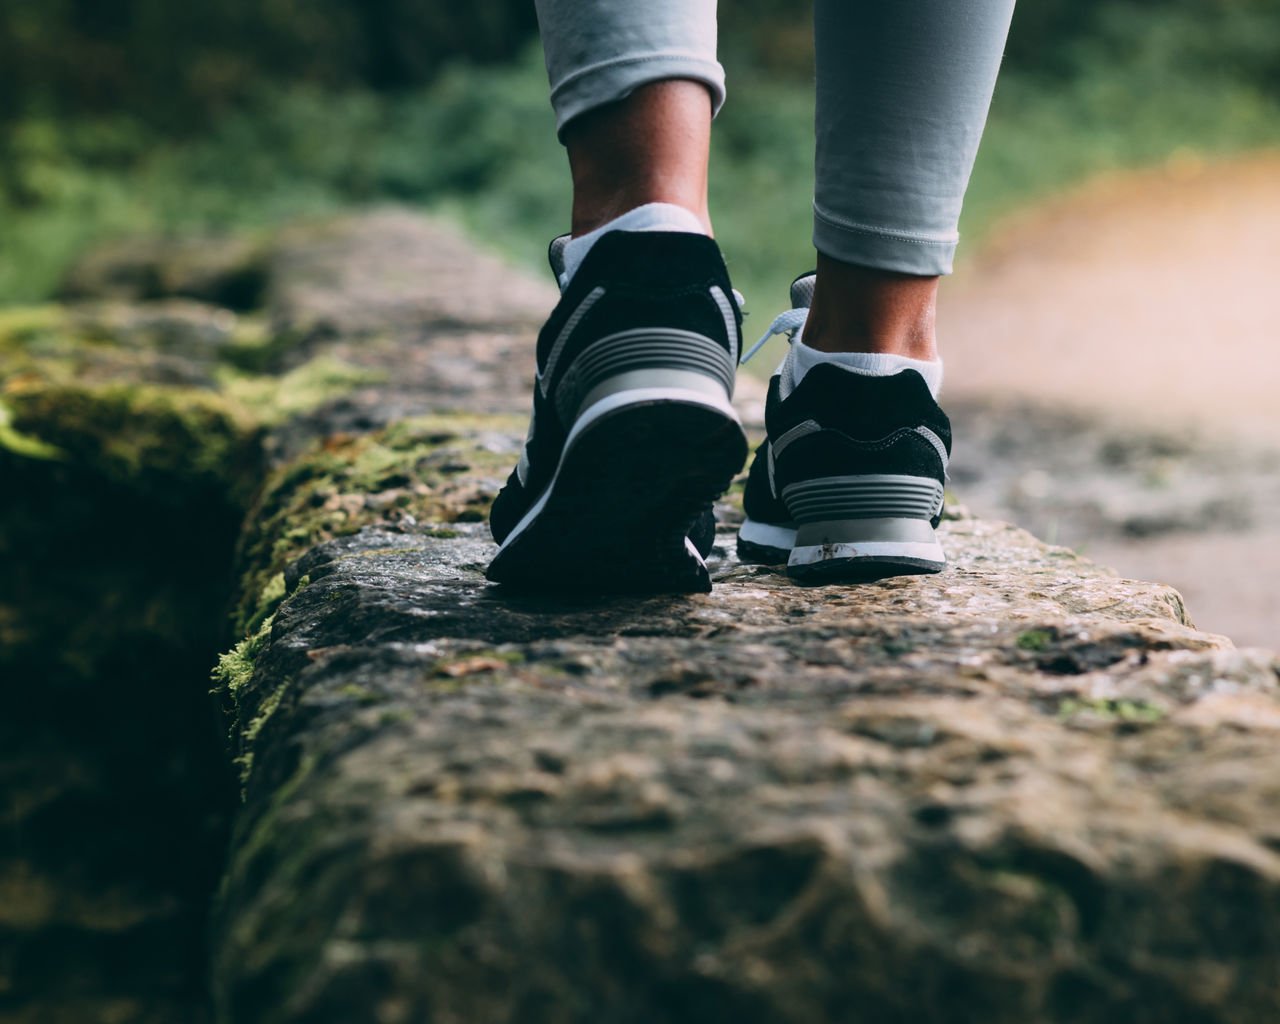 Fitness Focus On Foreground Foot Footpath Human Foot Legs Low Angle View Low Section Outdoors Park Sneakers Sport Standing The Way Forward